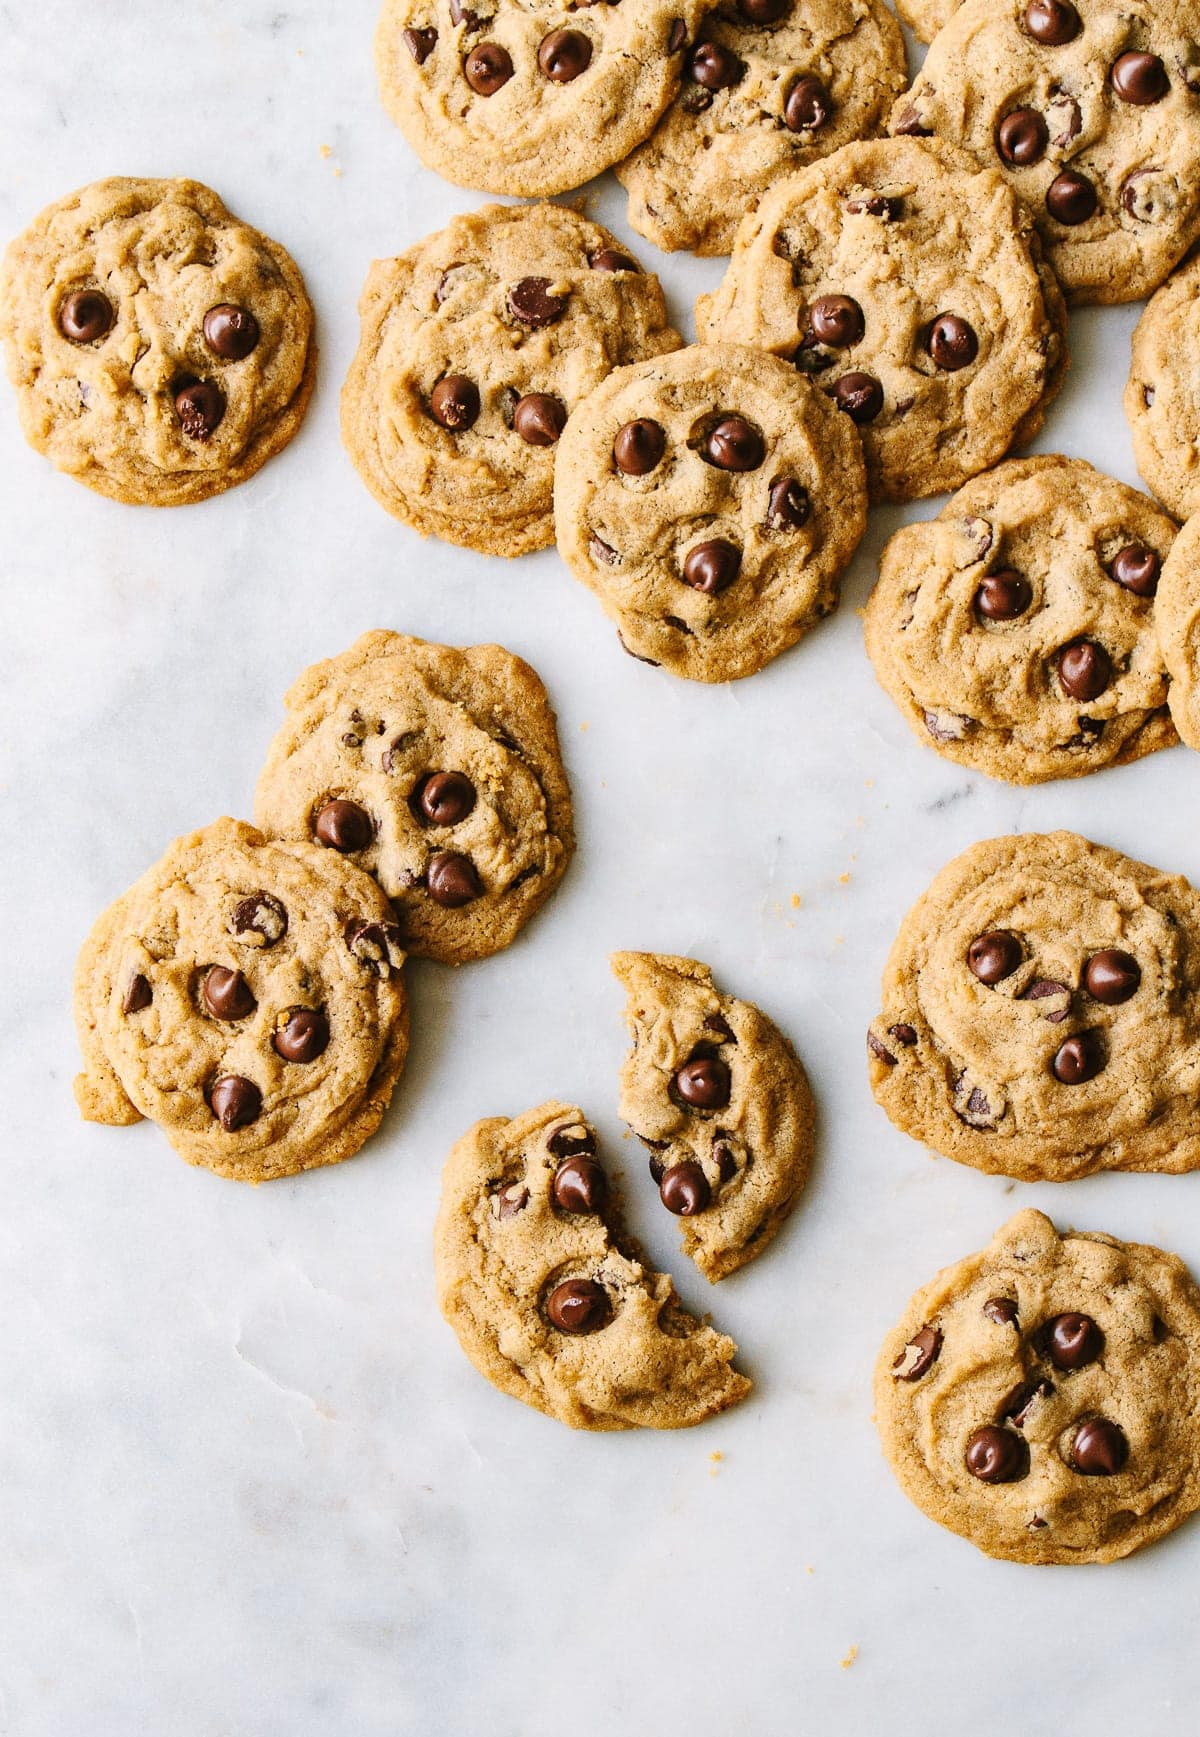 Best Vegan Chocolate Chip Cookies The Simple Veganista